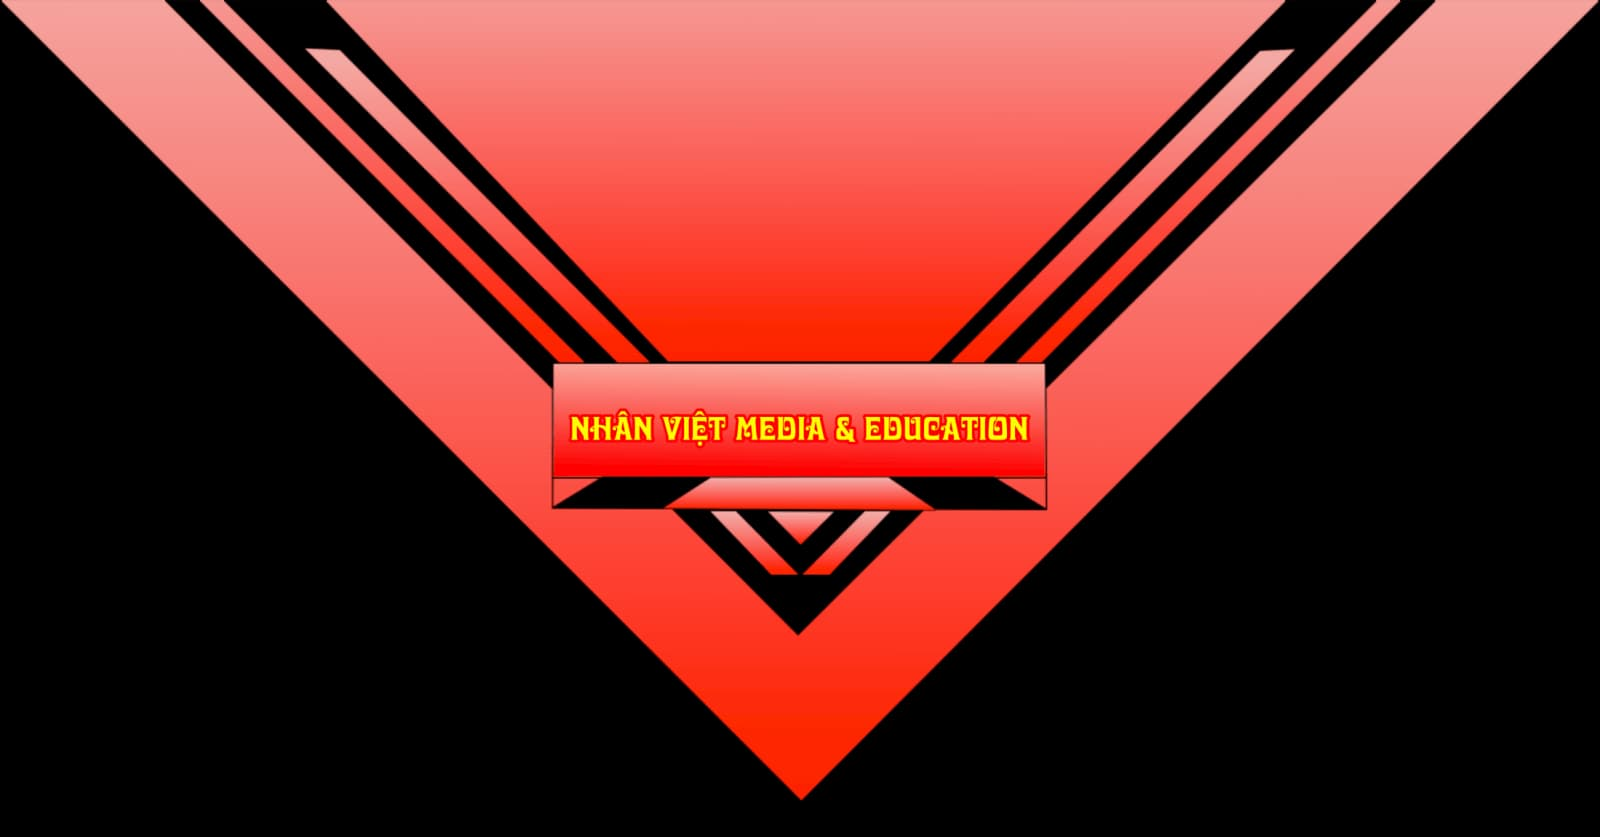 Nhân Việt Media & Education